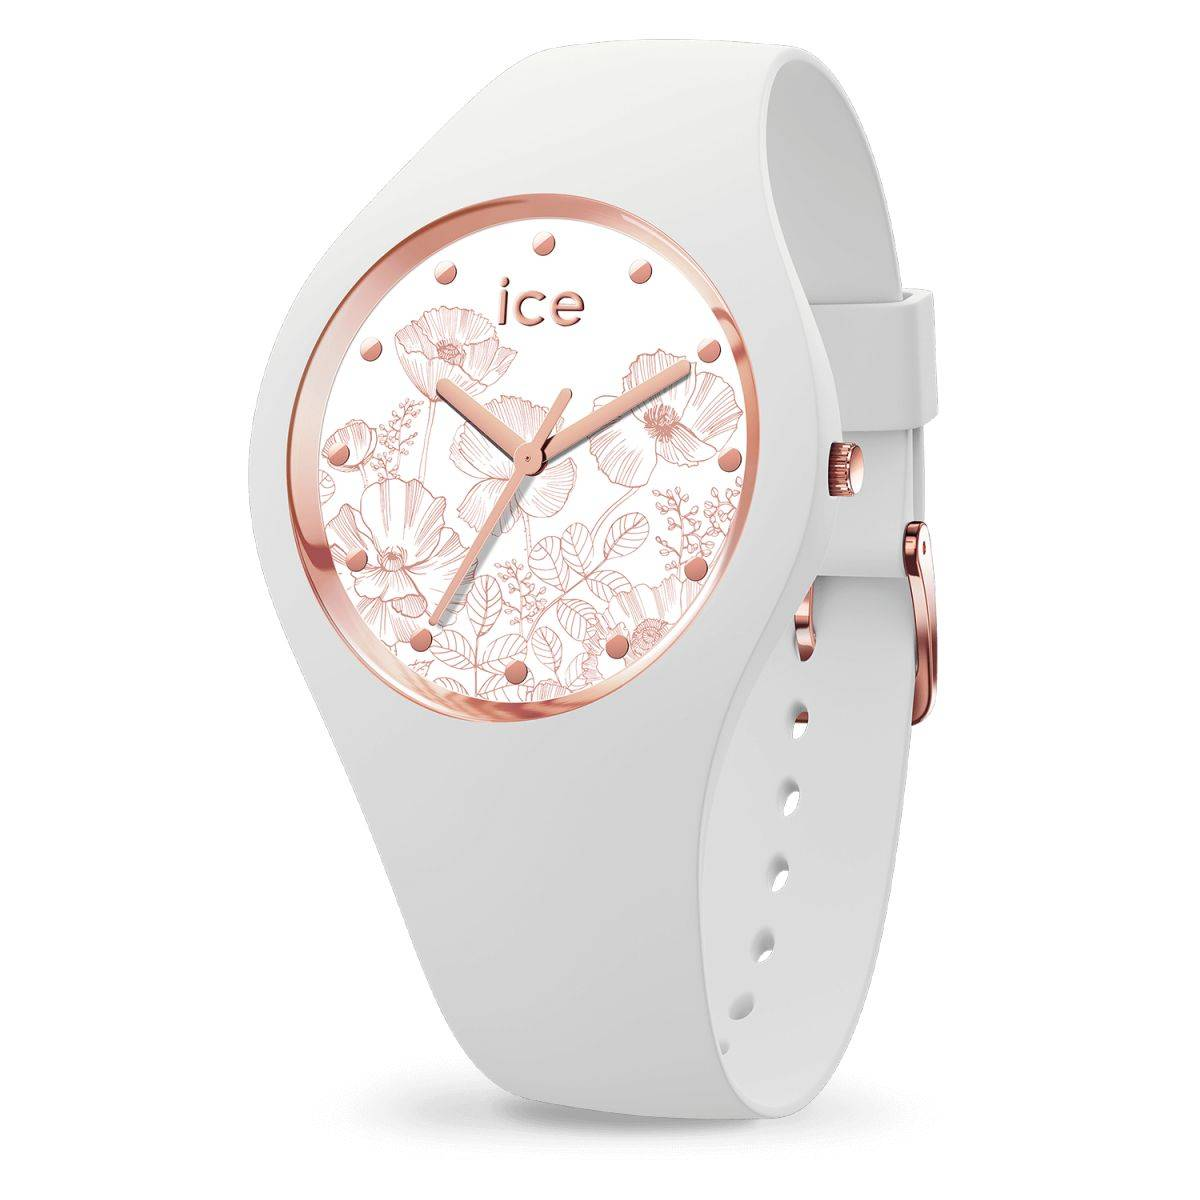 ad0a1760f137e Ice Watch - Montre Femme Bracelet Silicone Ice Flower Spring White (016669)  Vue Principale ...